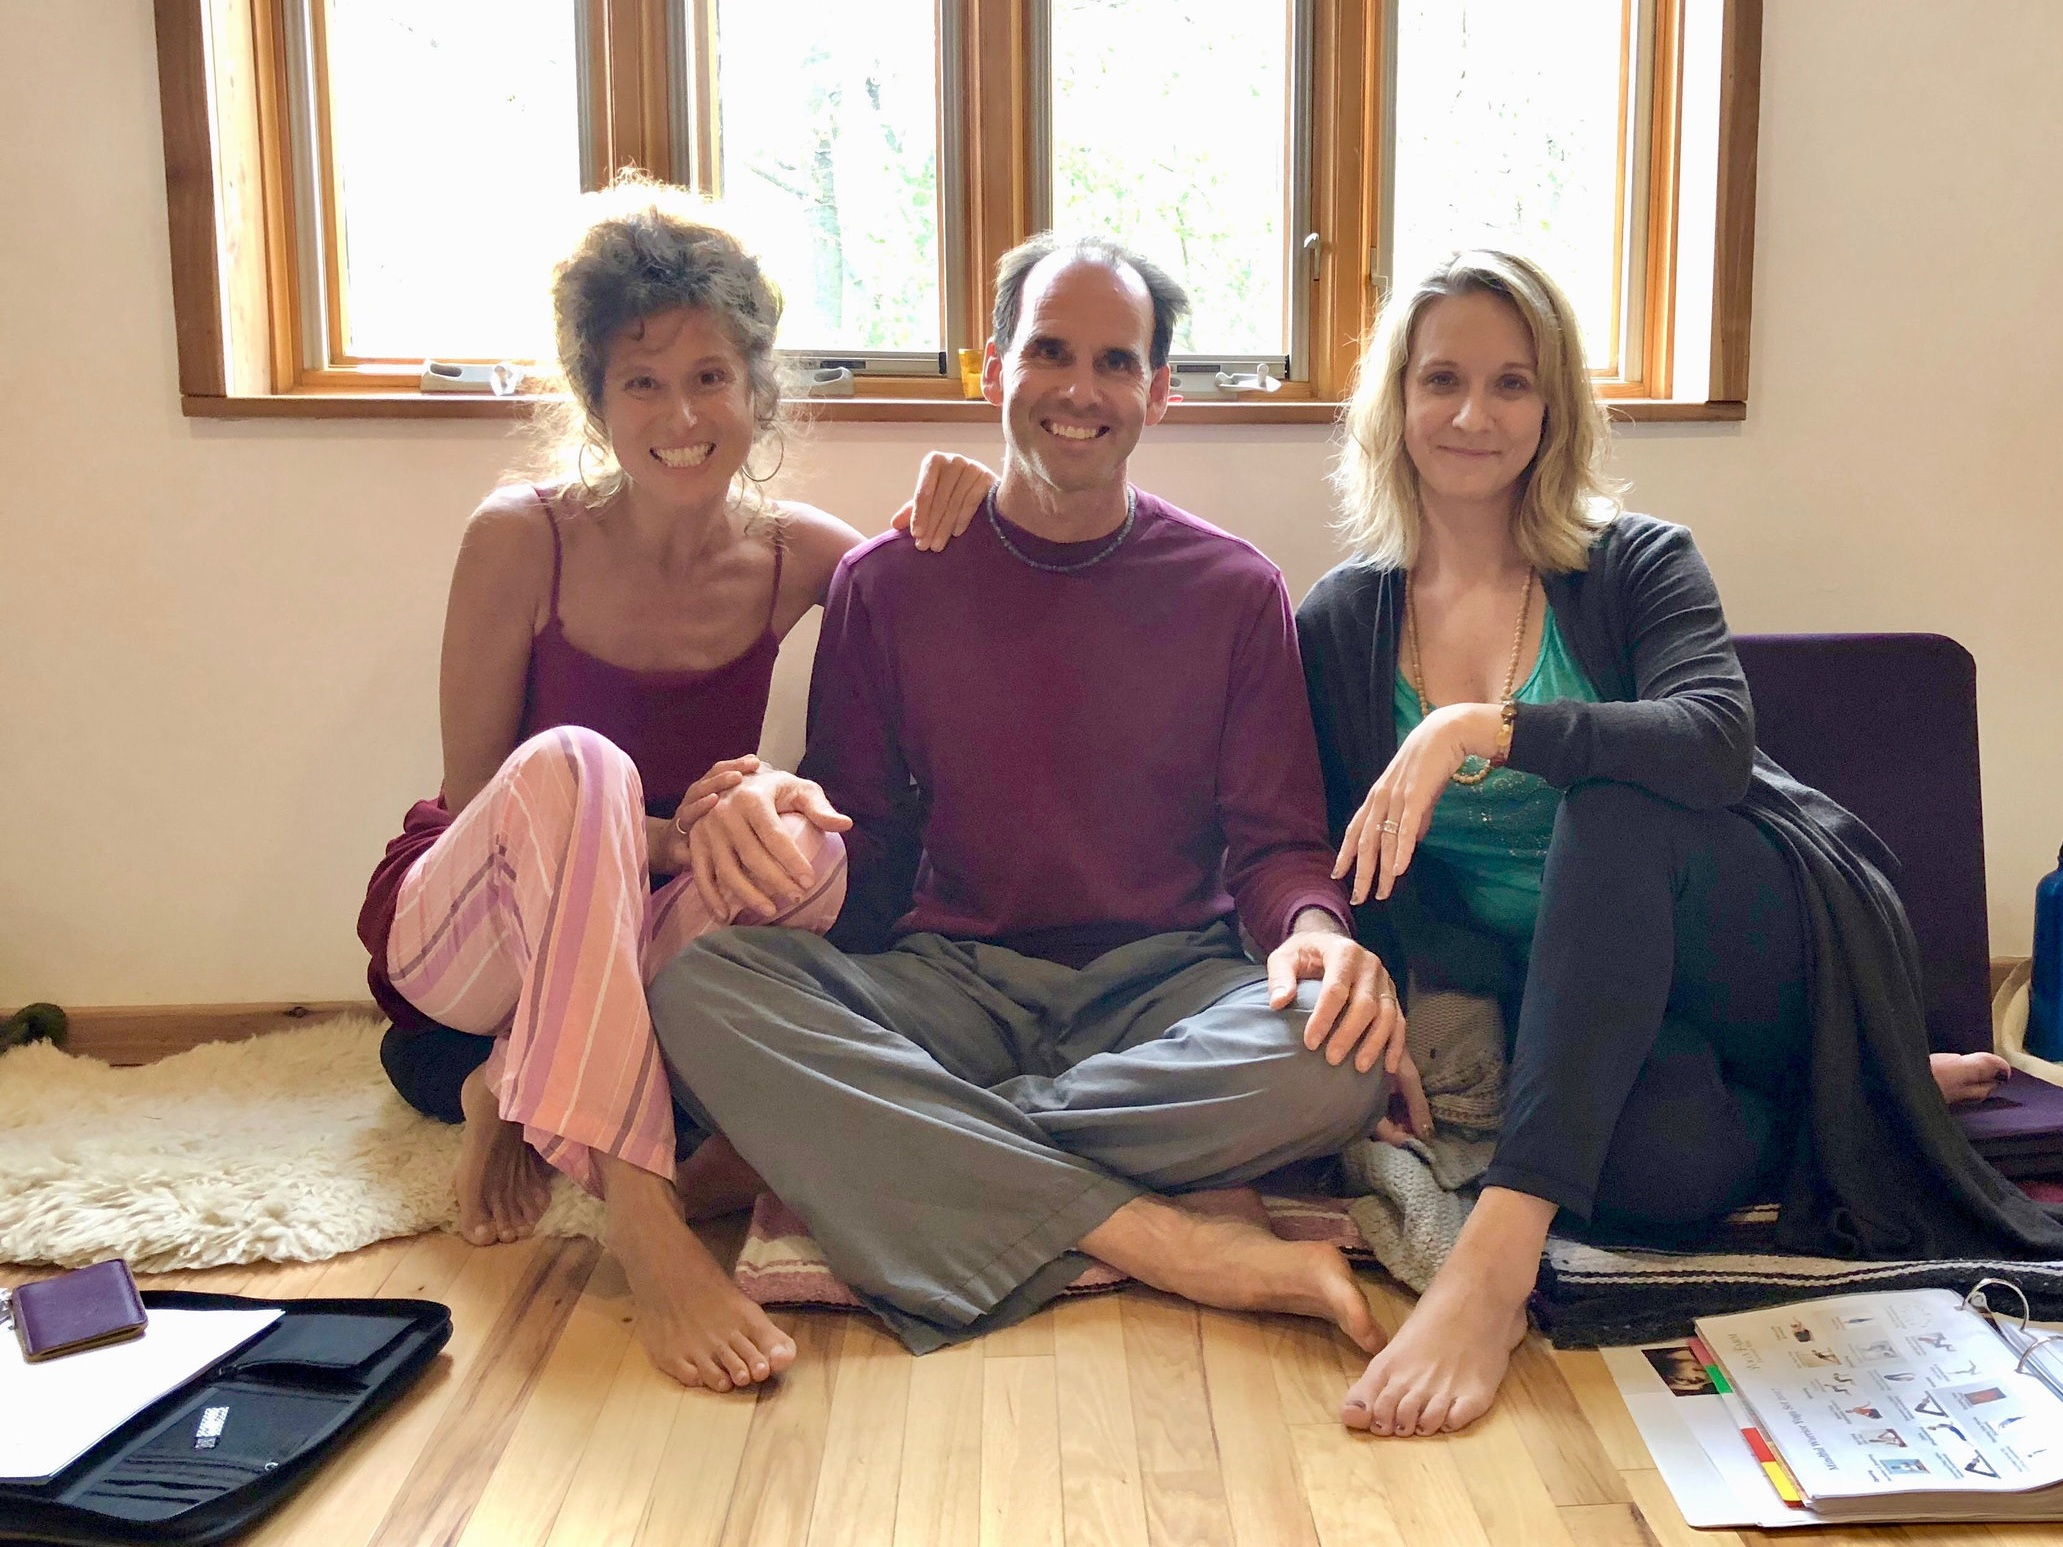 With love and respect,  Daniela, Christopher and Jeannie, Directors and Educators    With special thanks to our yoga teachers (Pennee, Melani, Lynn, Lazarra, Hannah, Alyssa) and volunteers at your community nonprofit,  The Radiant Living School at Yoga Farm